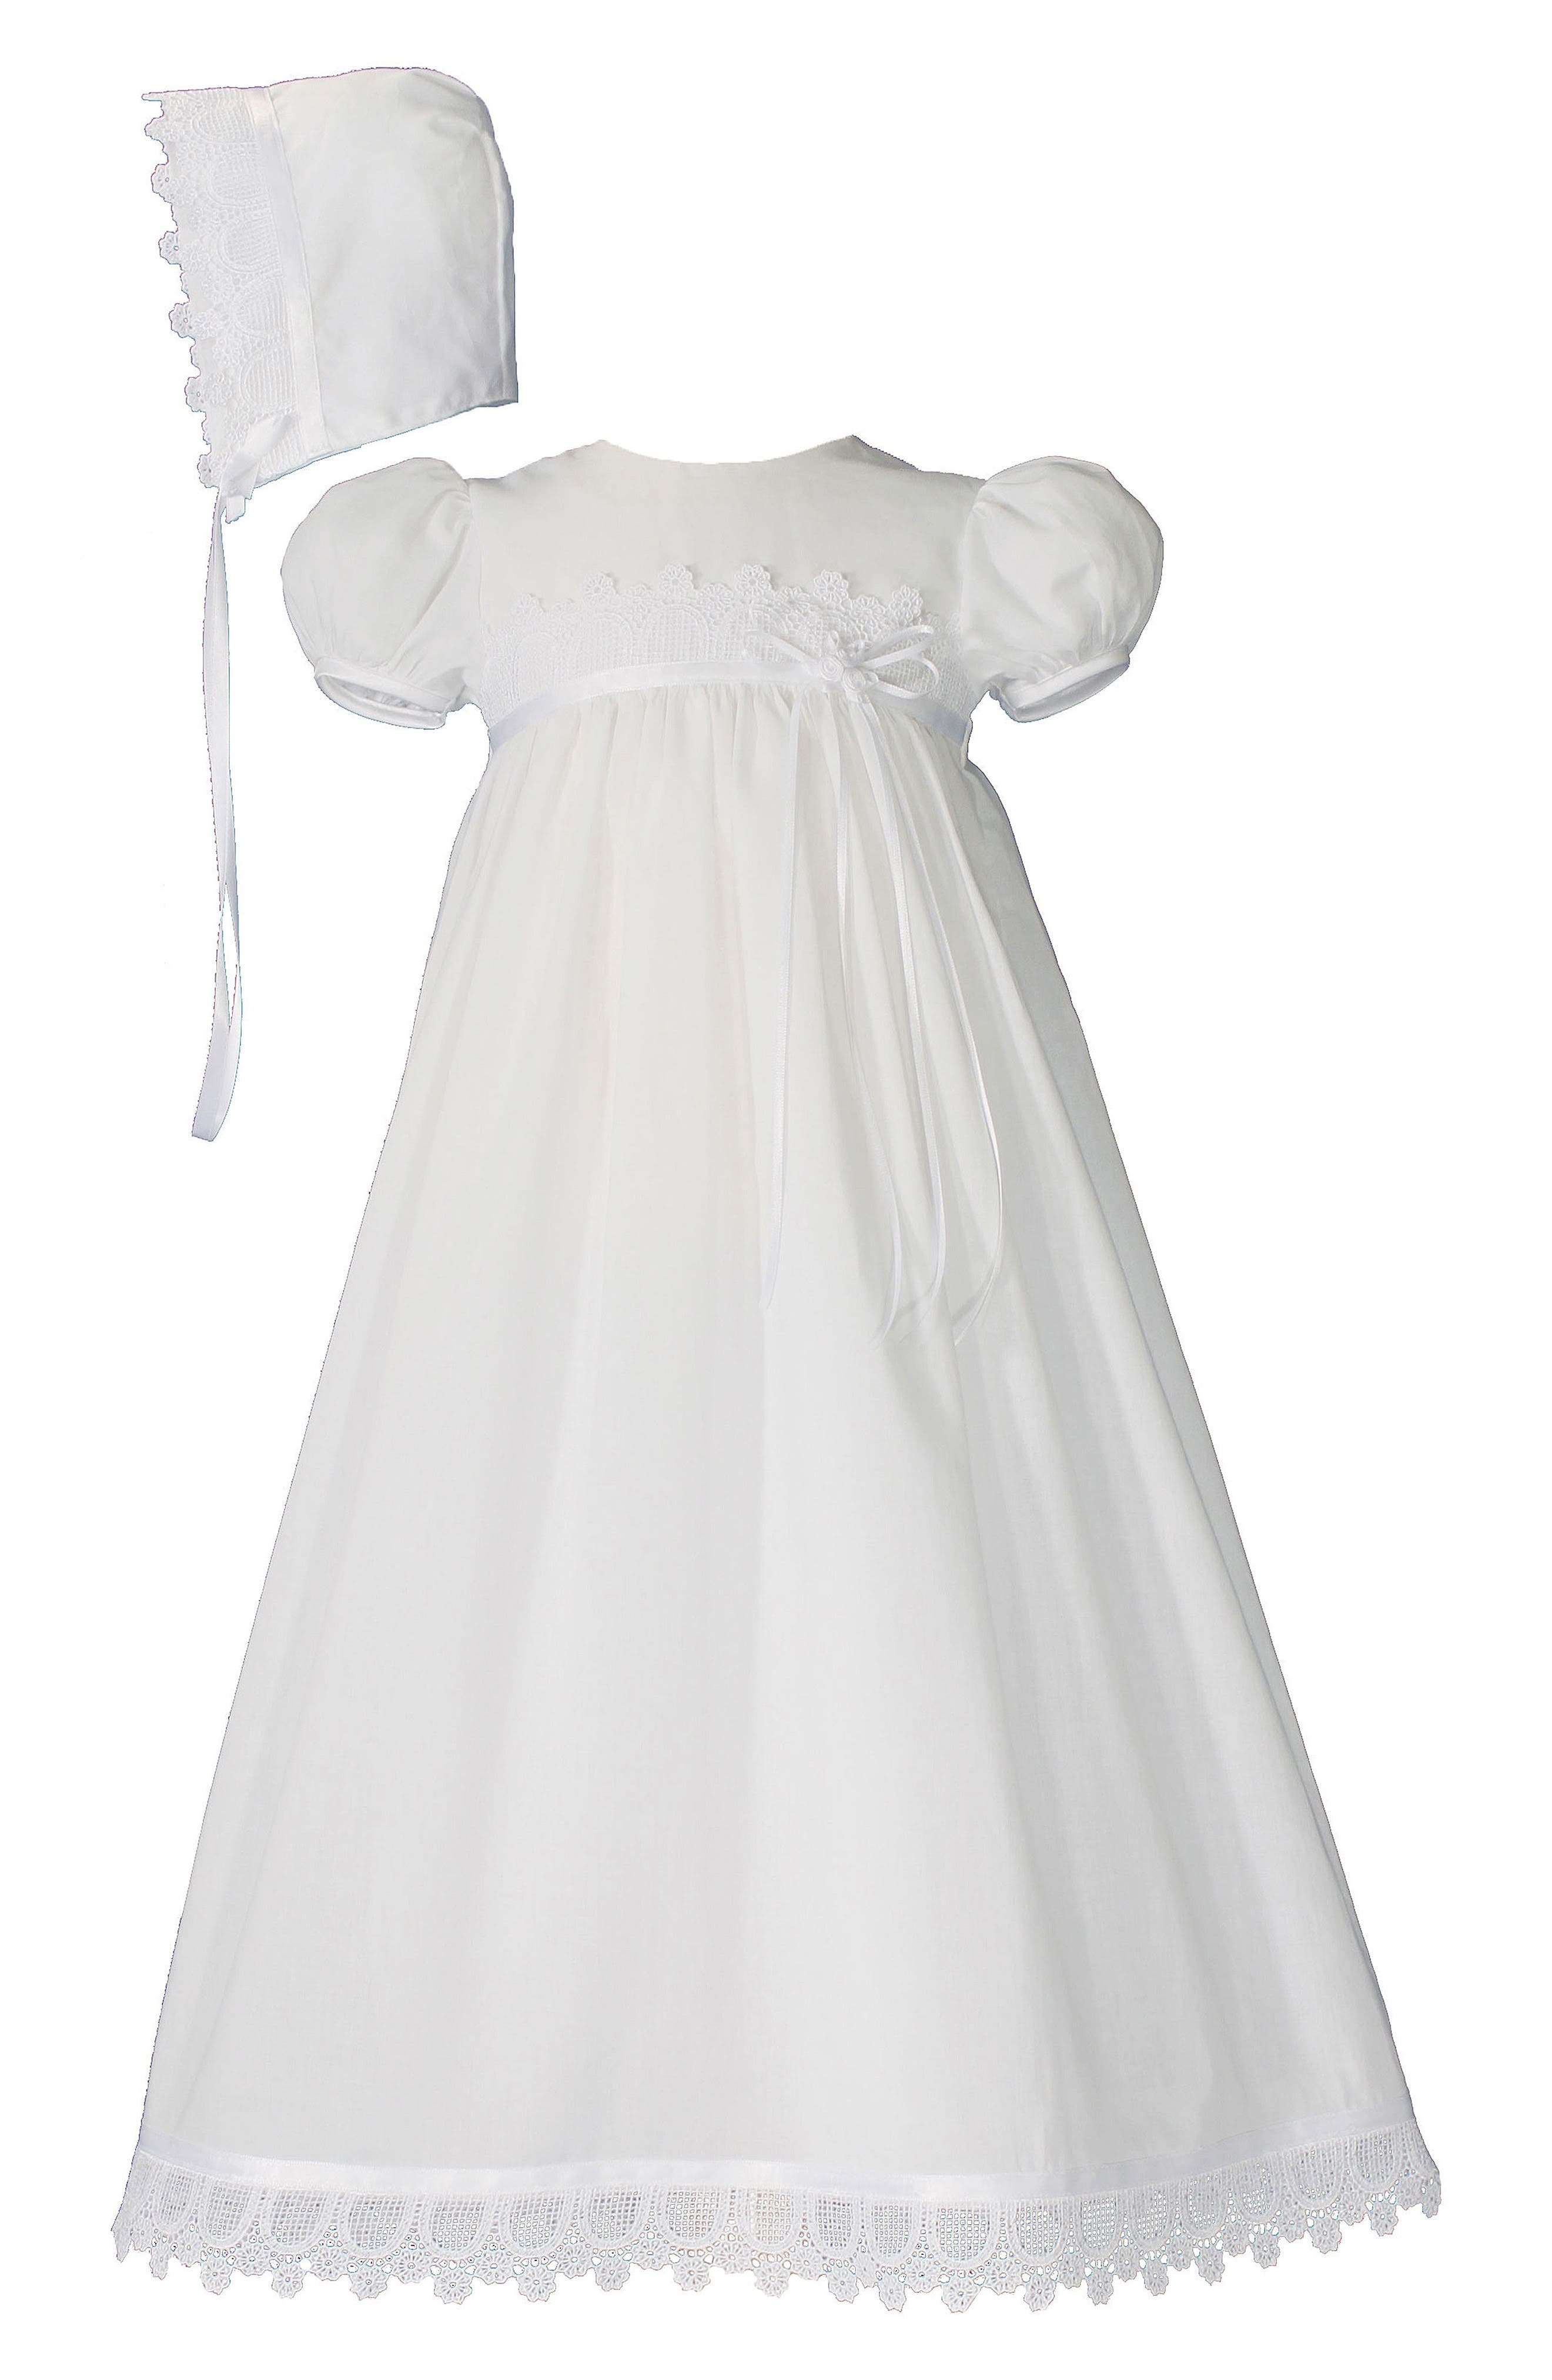 Alternate Image 1 Selected - Little Things Mean A Lot Christening Gown & Hat Set (Baby Girls)